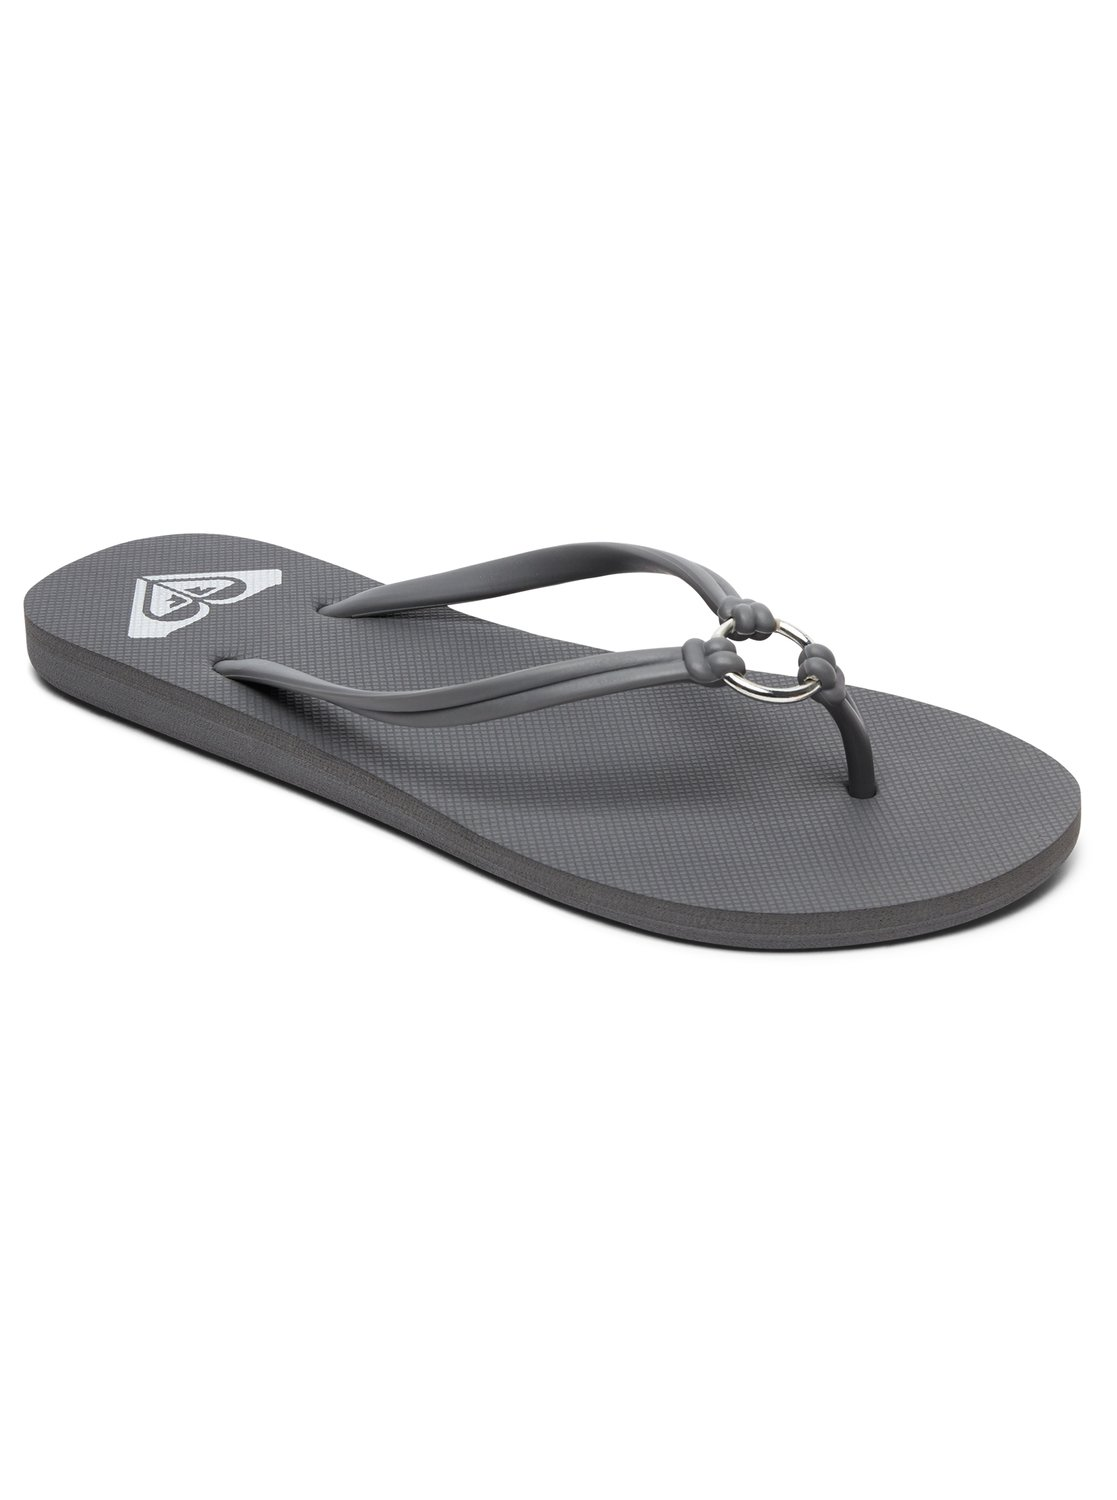 Roxy Sandalen »Solis«, grau, DARK GREY